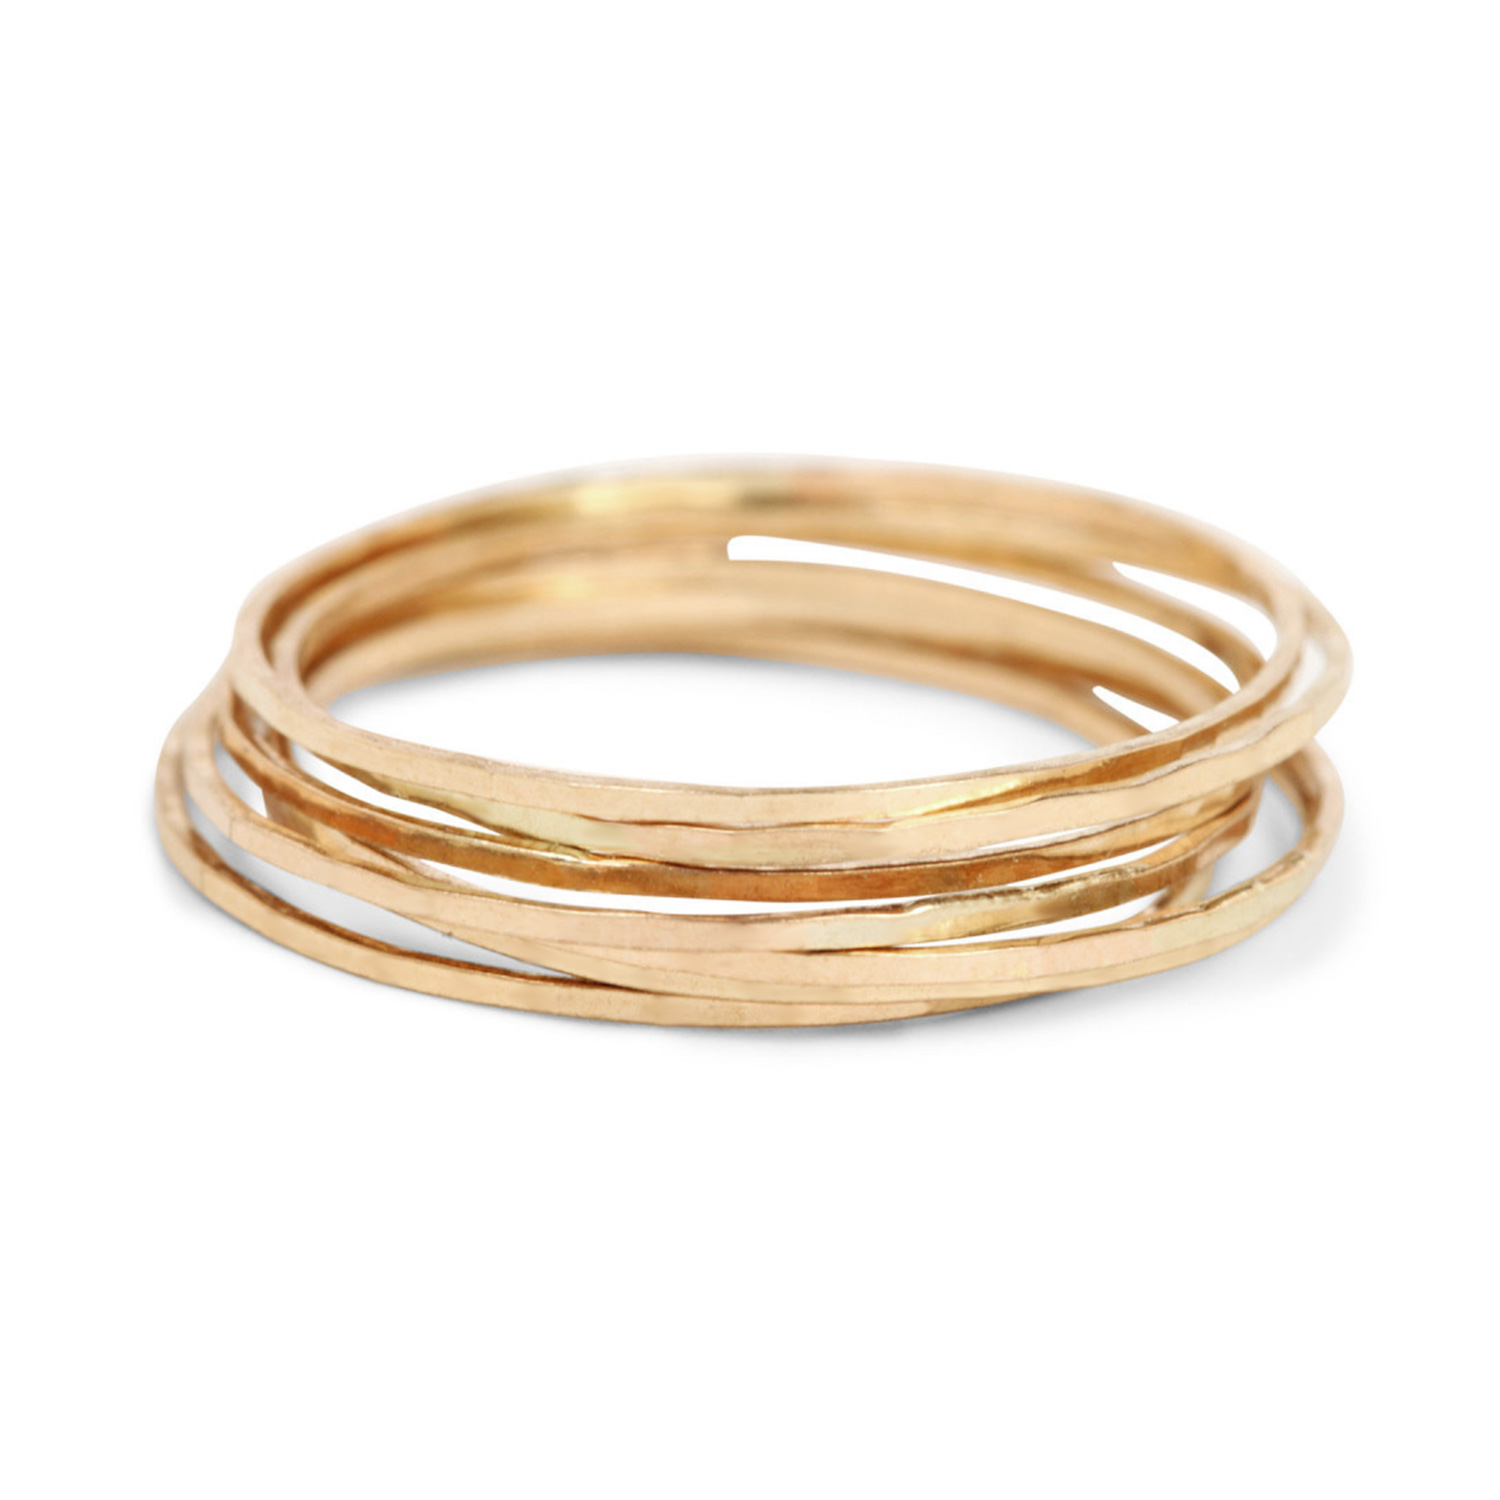 fullxfull rings half listing round gold il low golden wide clcn profile band ring wedding zoom